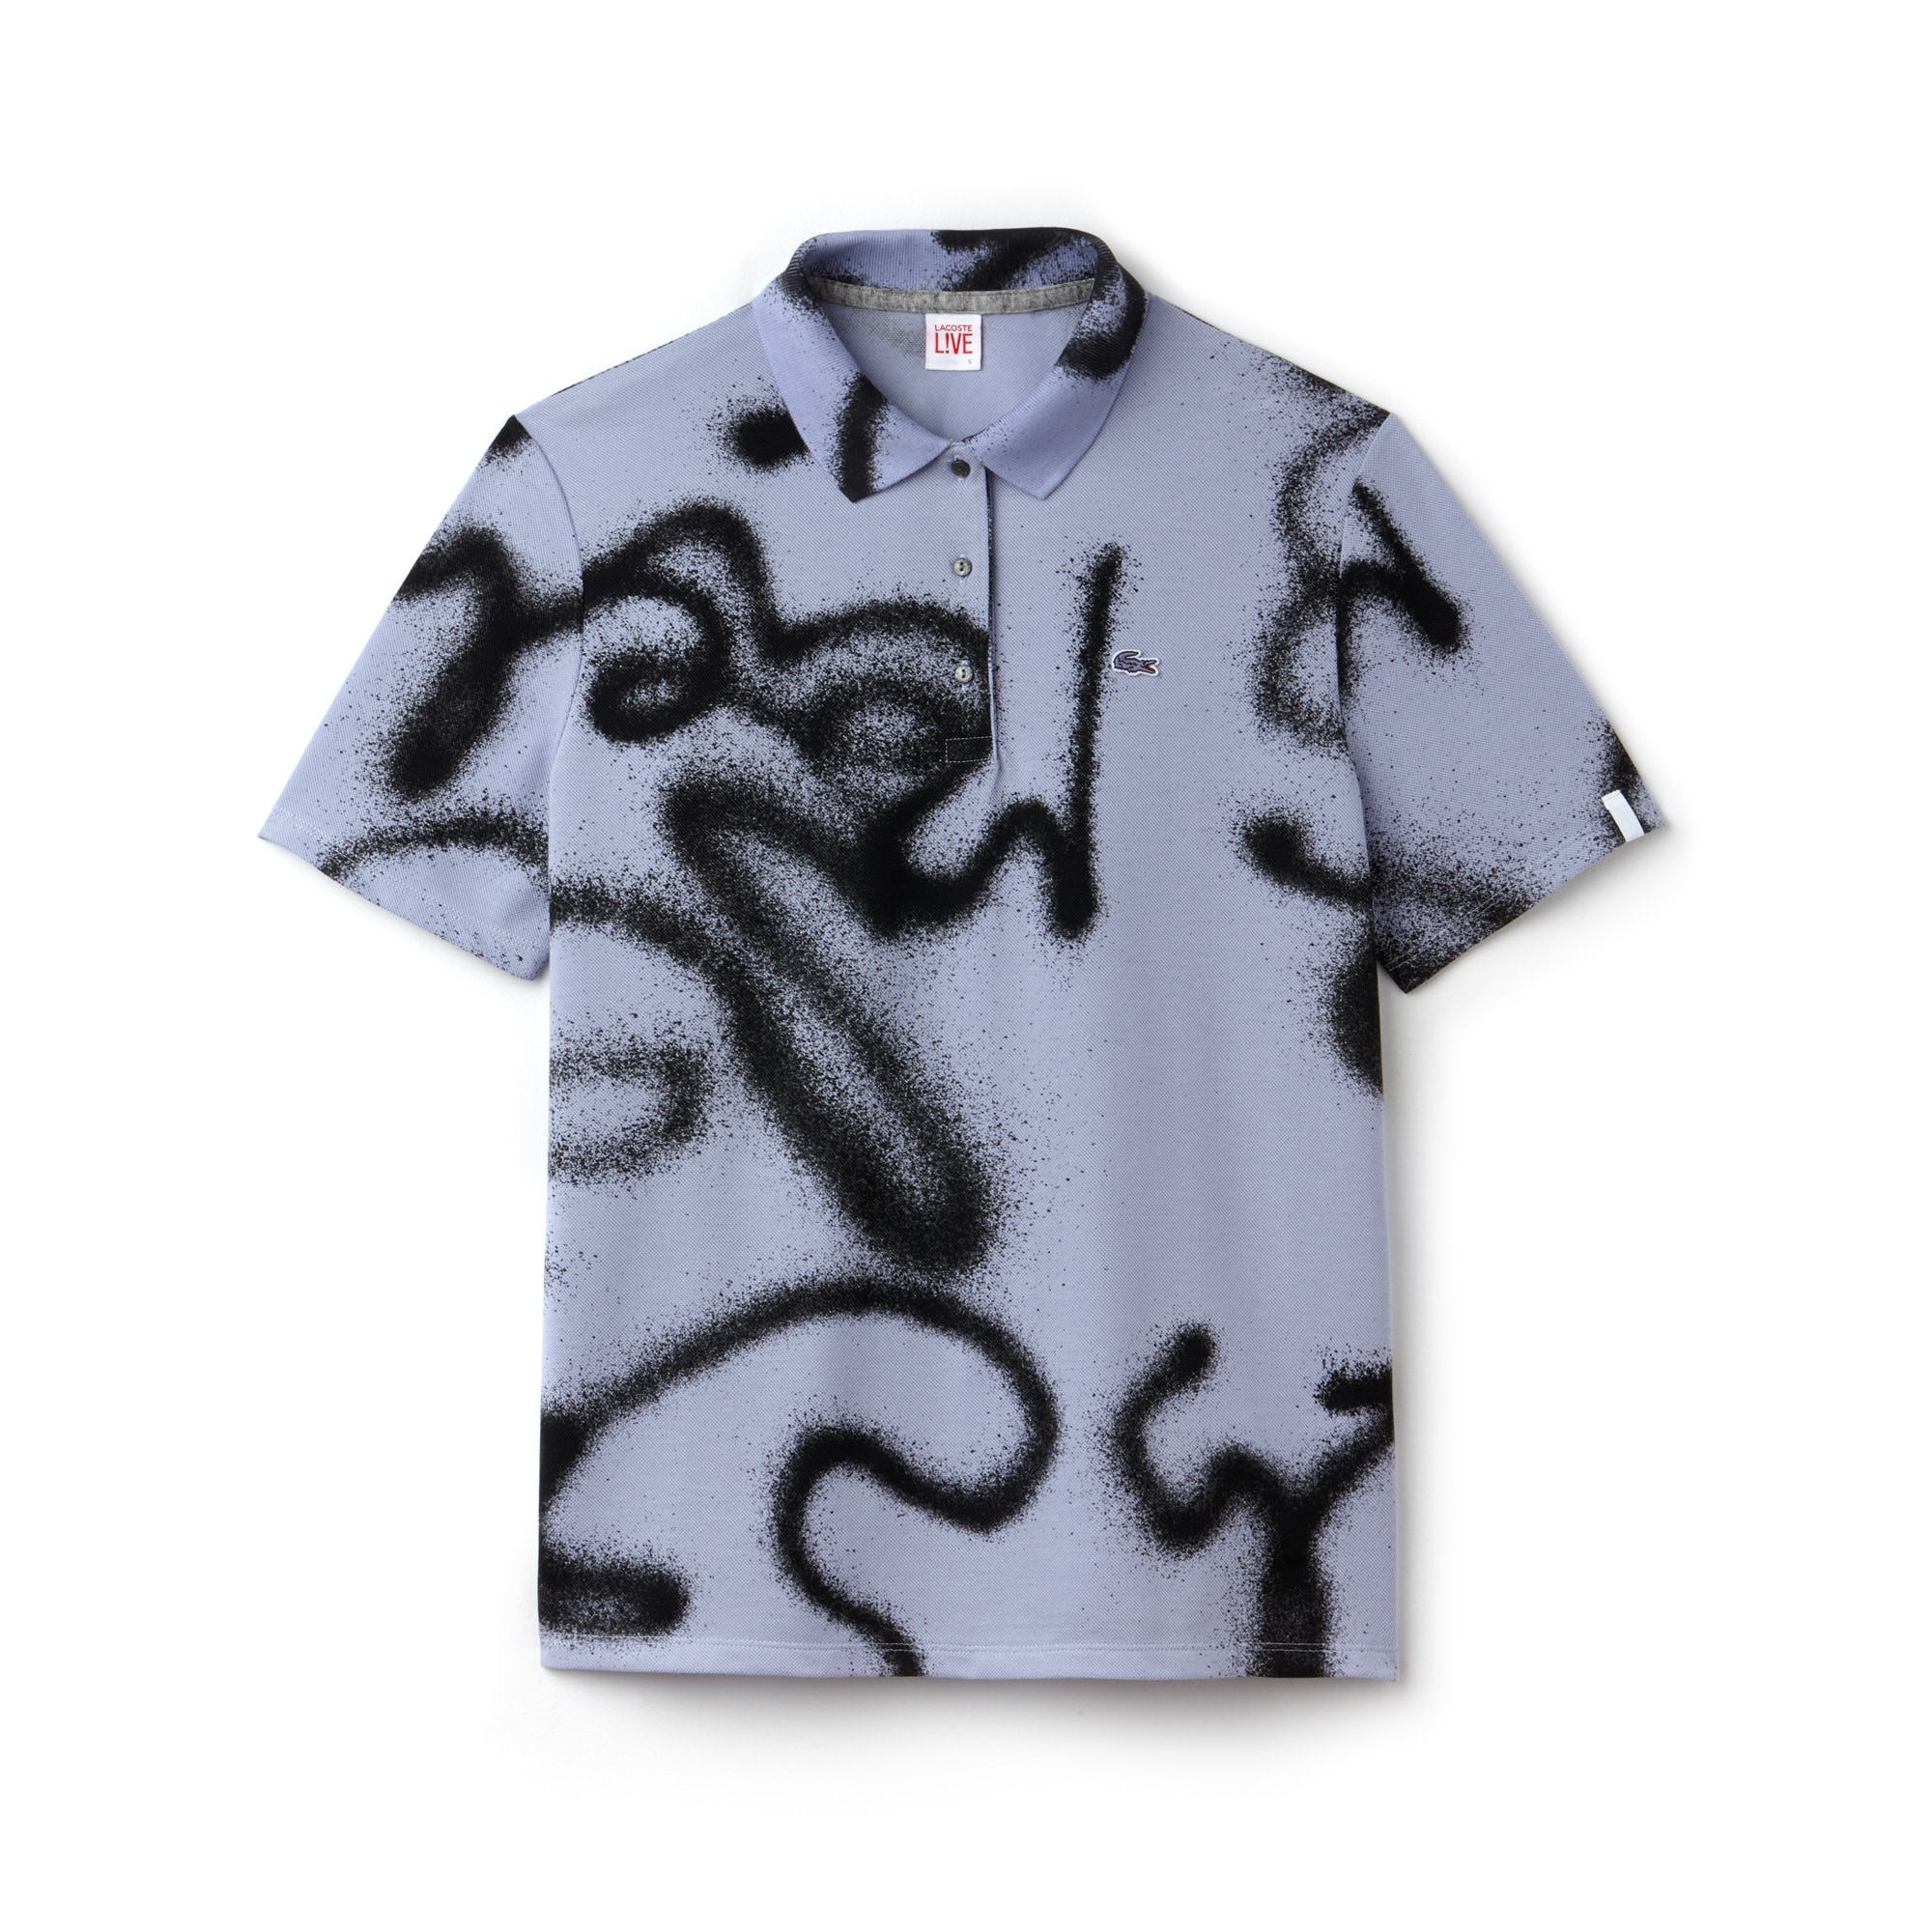 Women's LIVE Graffiti Print Cotton Mini Piqué Polo